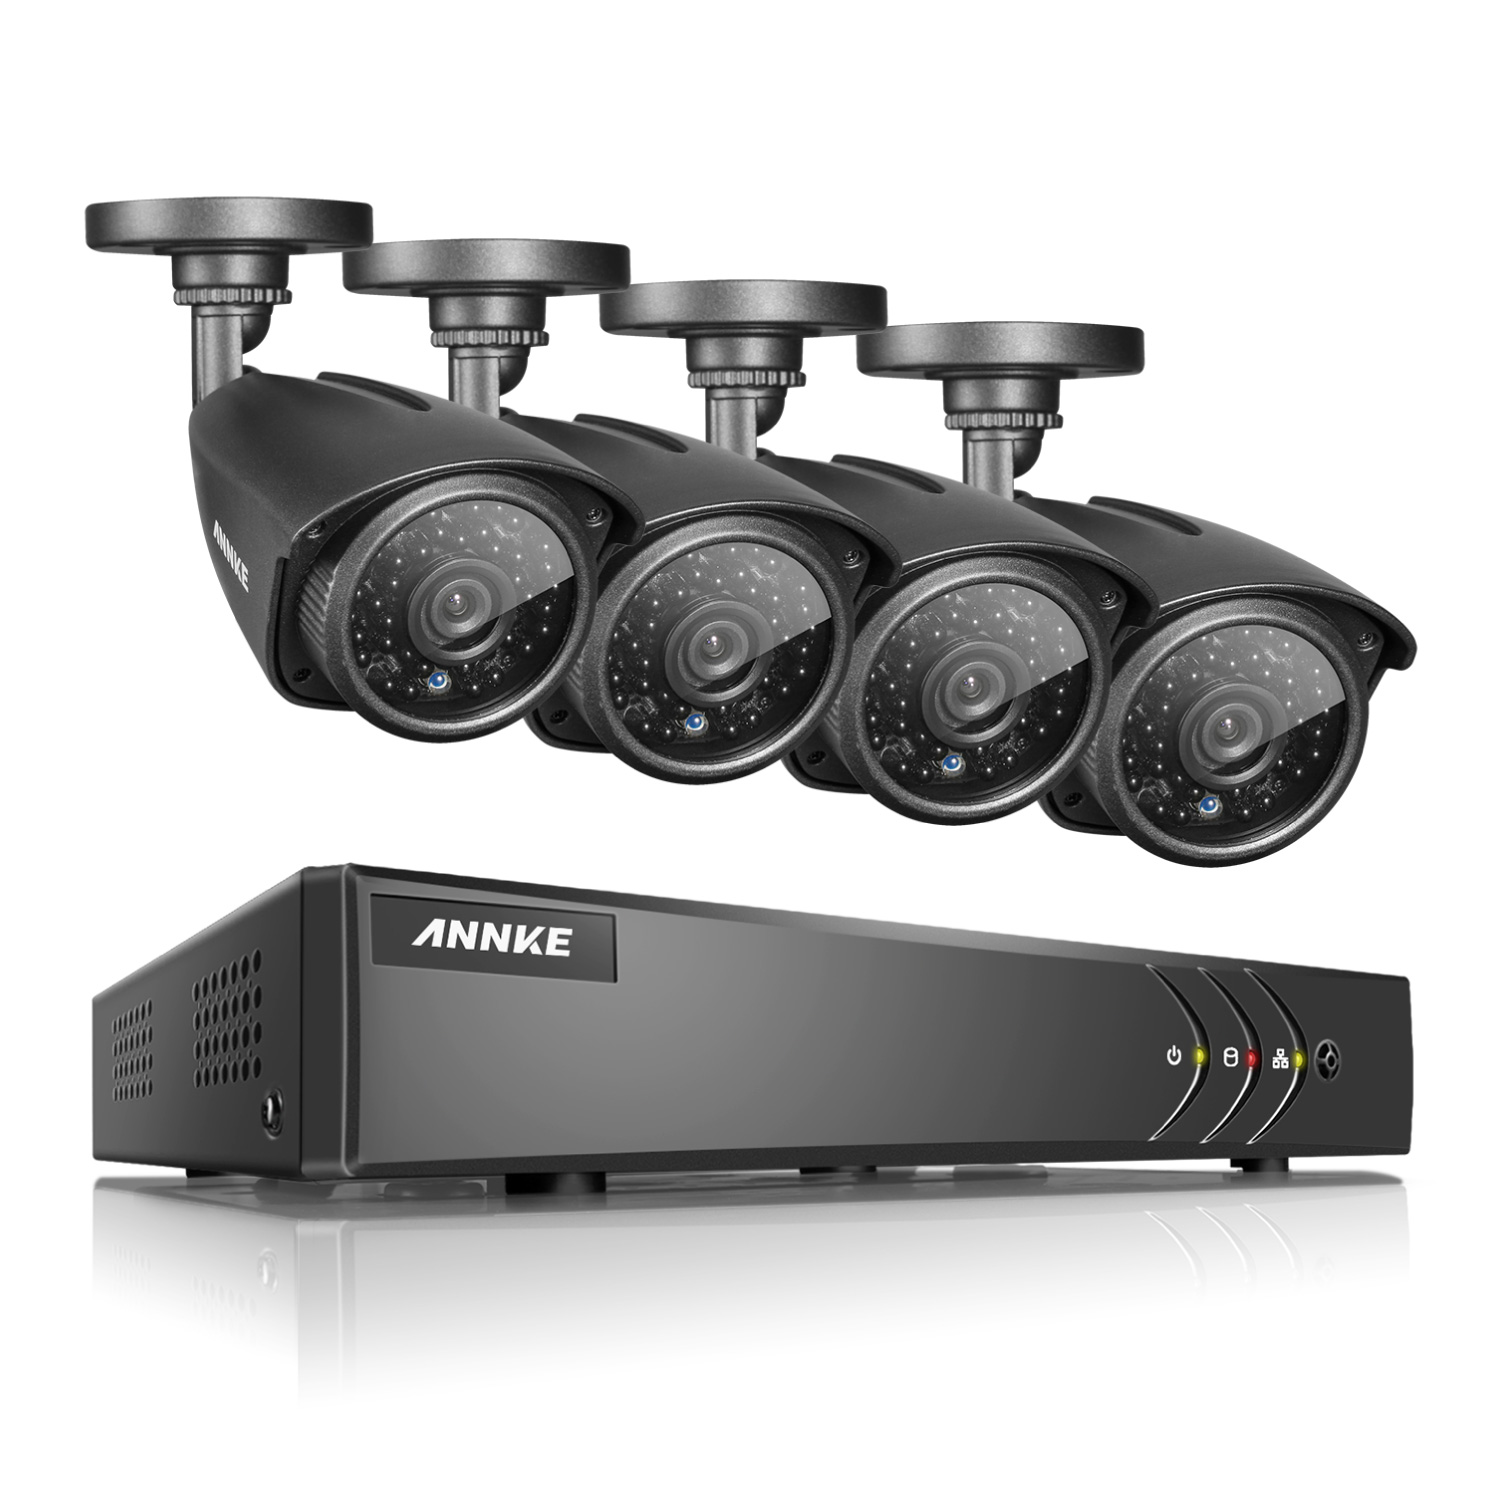 ANNKE 8CH 1080P HDMI DVR Outdoor Dome CCTV Video Home Security 4Pcs 960P Weatherproof Camera System Surveillance Kits With No Hard Drive Disk